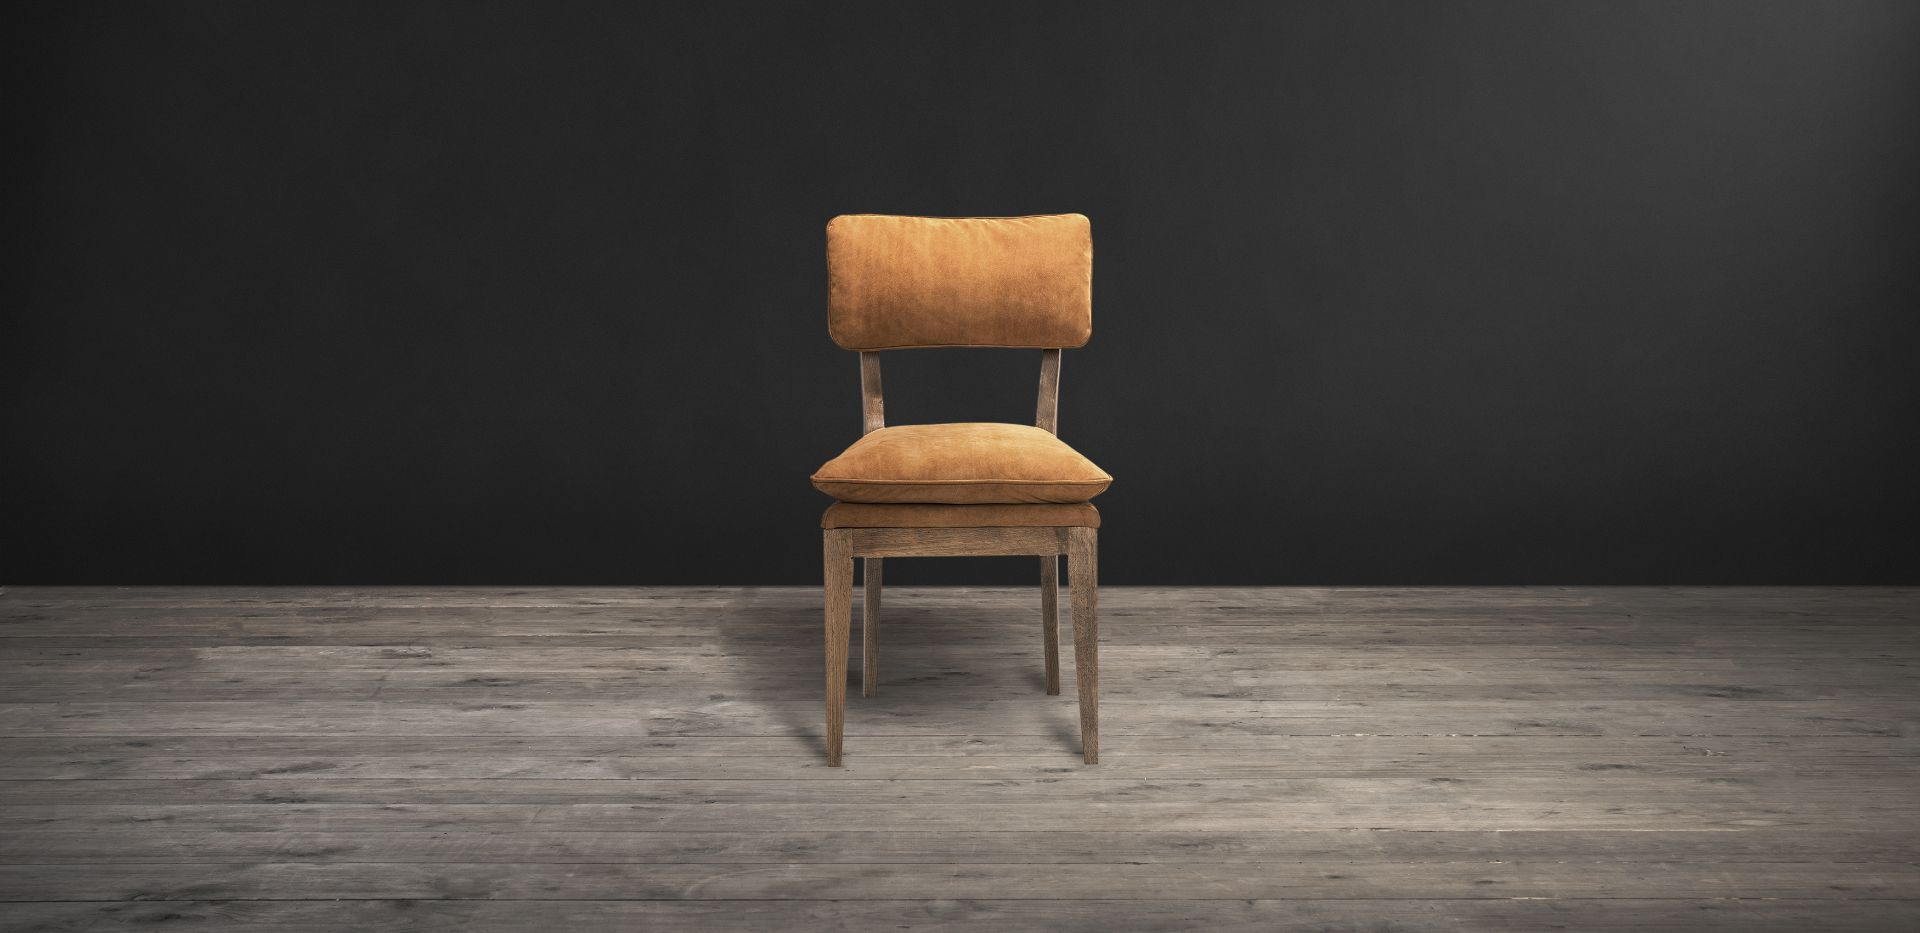 Lot 11 - Feather Dining Chair Aussie Tobac Leather The Feather Dining Chair Features A Simple, Rustic